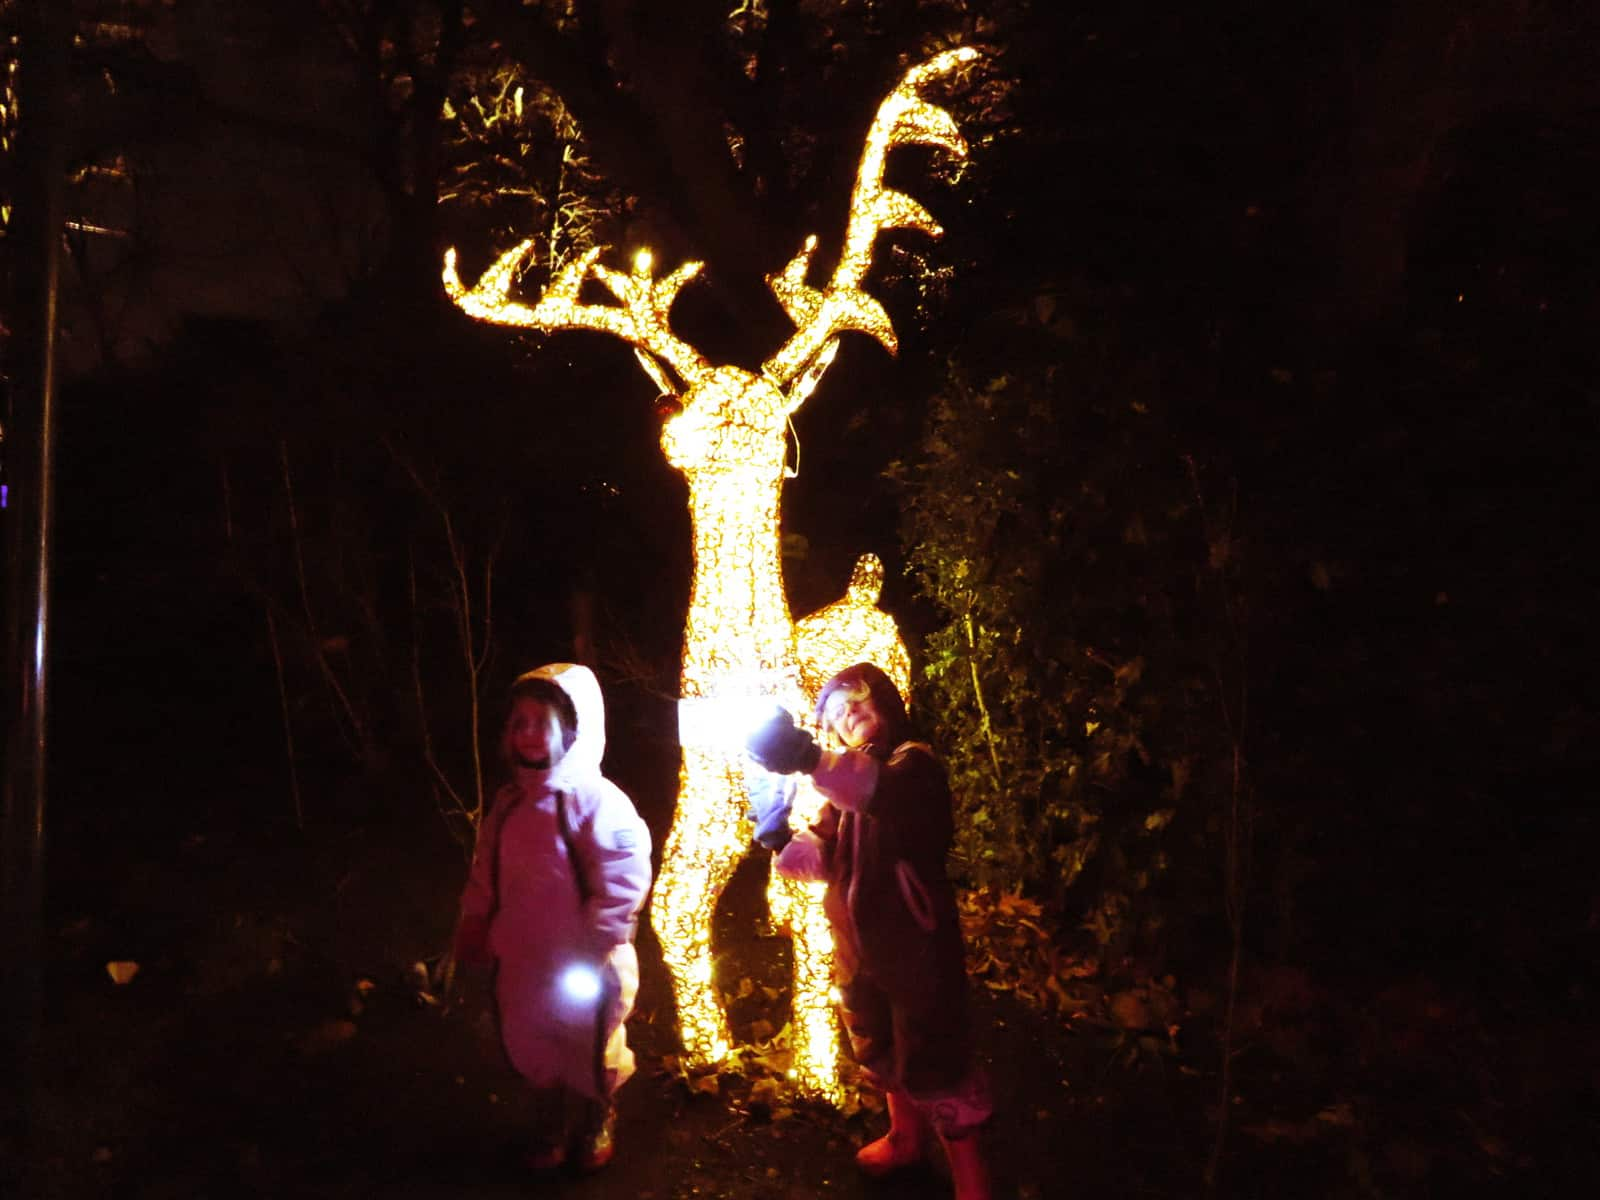 A gold, illuminated Rudolph the red nosed reindeer with two small children stood beside him in snow suits